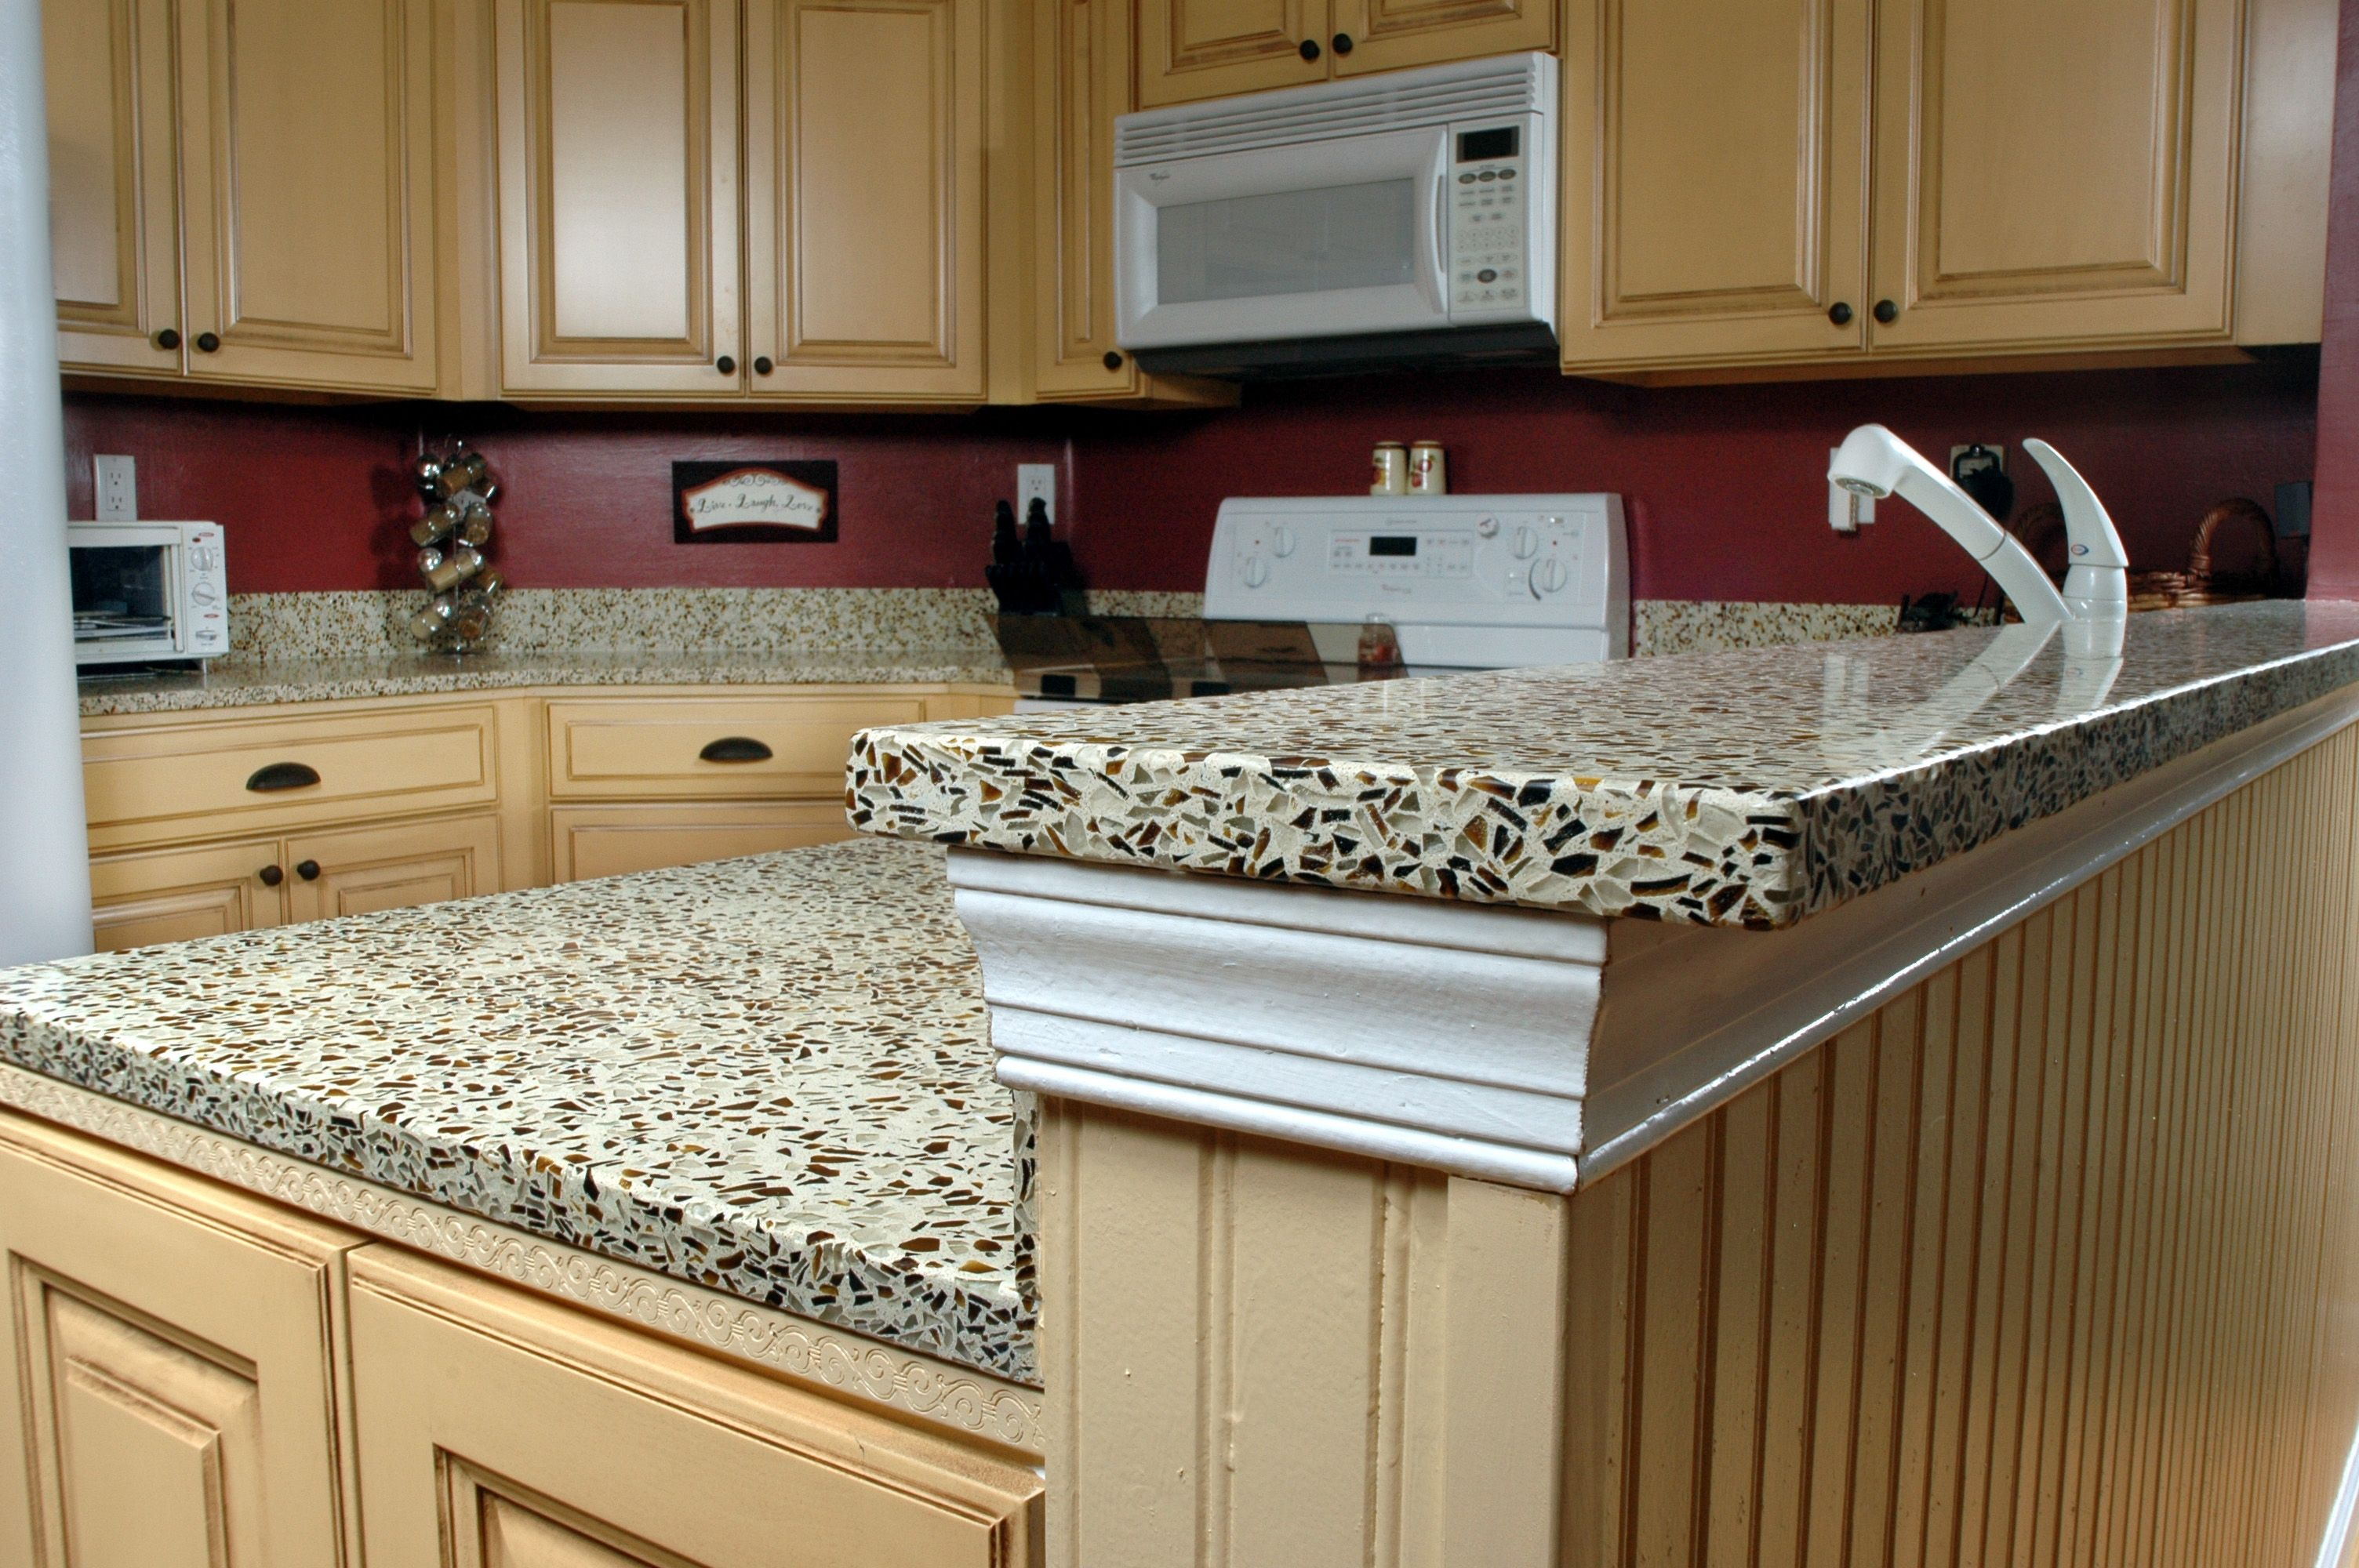 Kitchen remodel laminate countertops navigatorspbfo